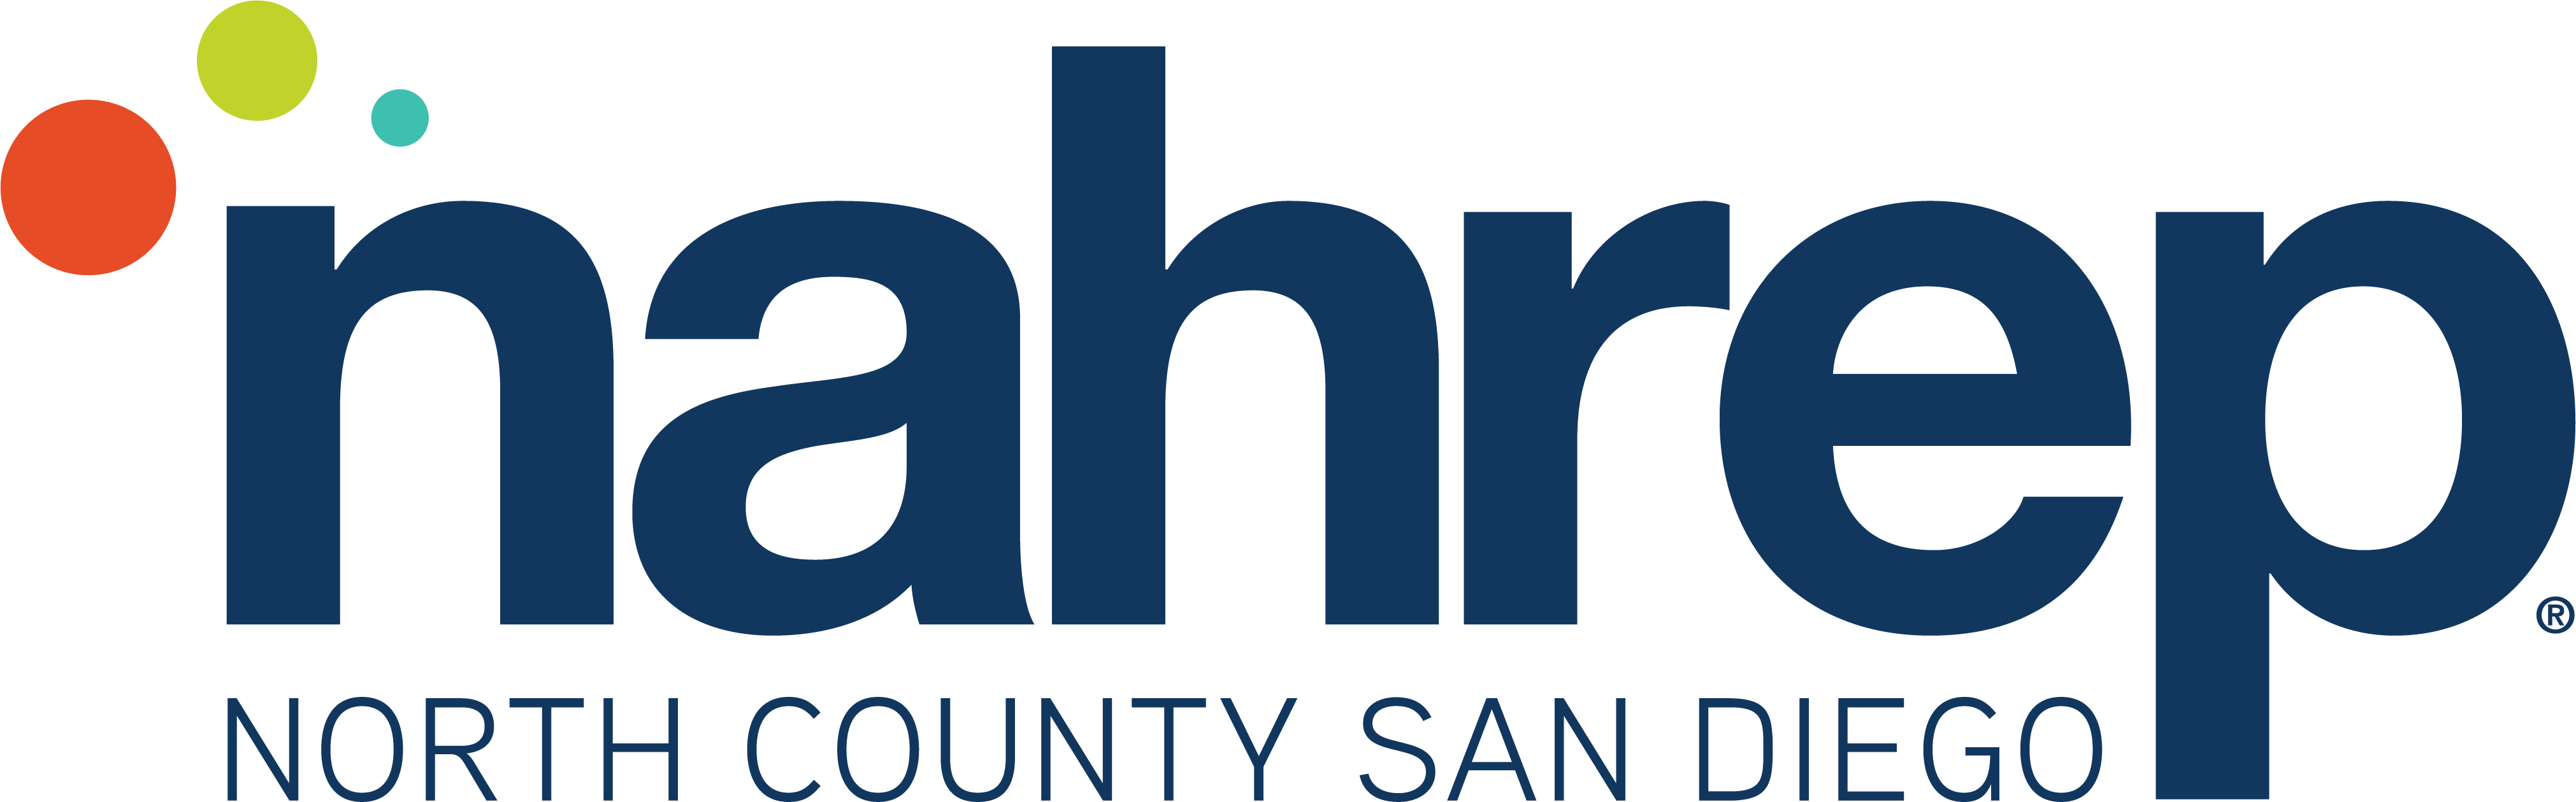 NAHREP North County San Diego